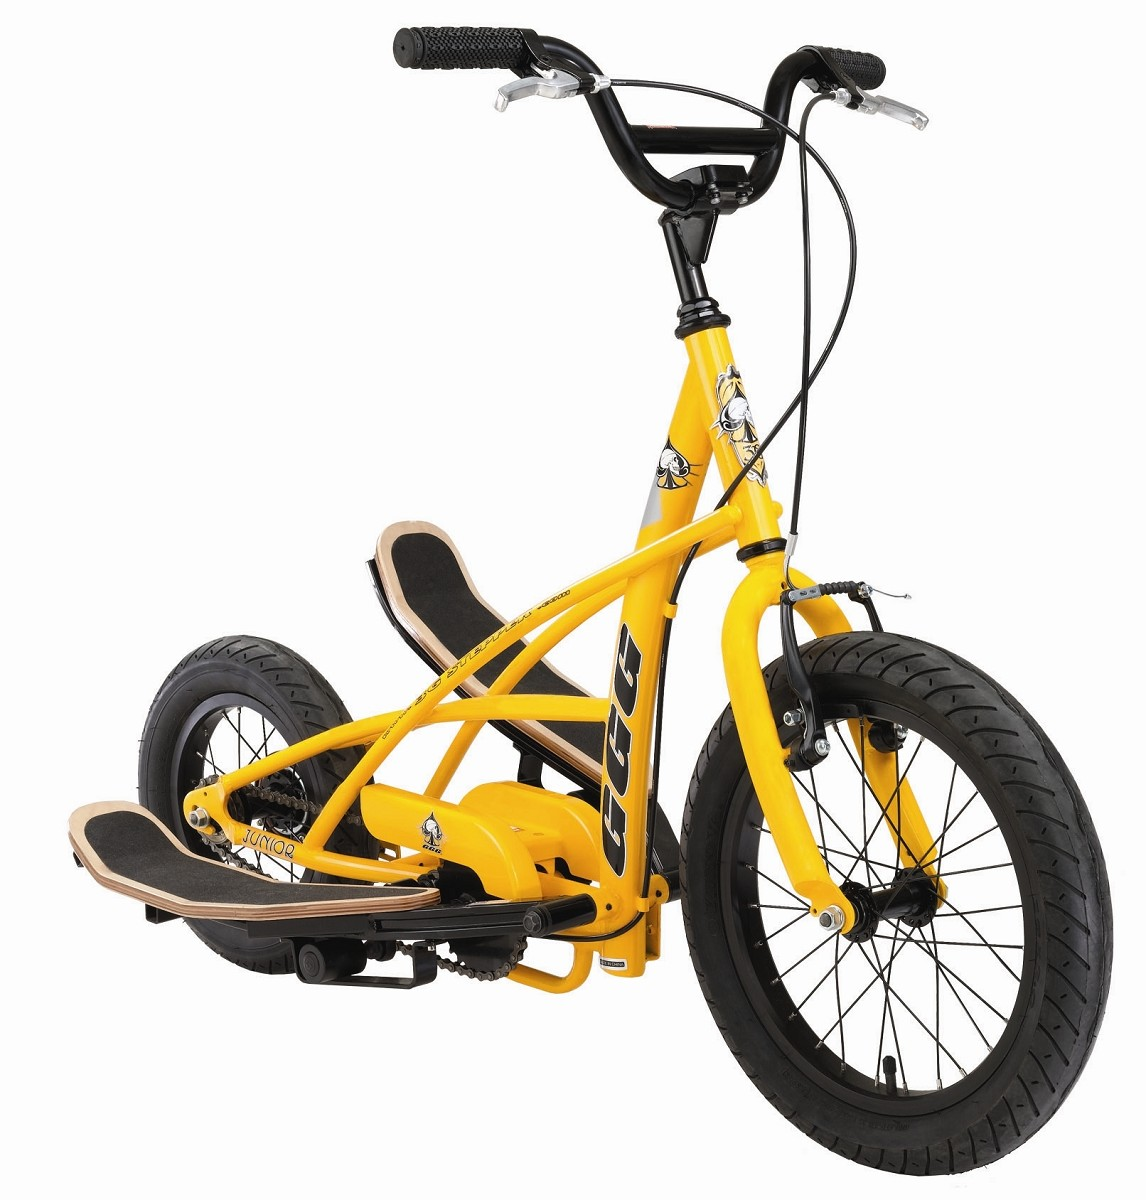 stepperbike crossbike fahrrad crosstrainer funbike stepper bike 3g junior gelb ebay. Black Bedroom Furniture Sets. Home Design Ideas